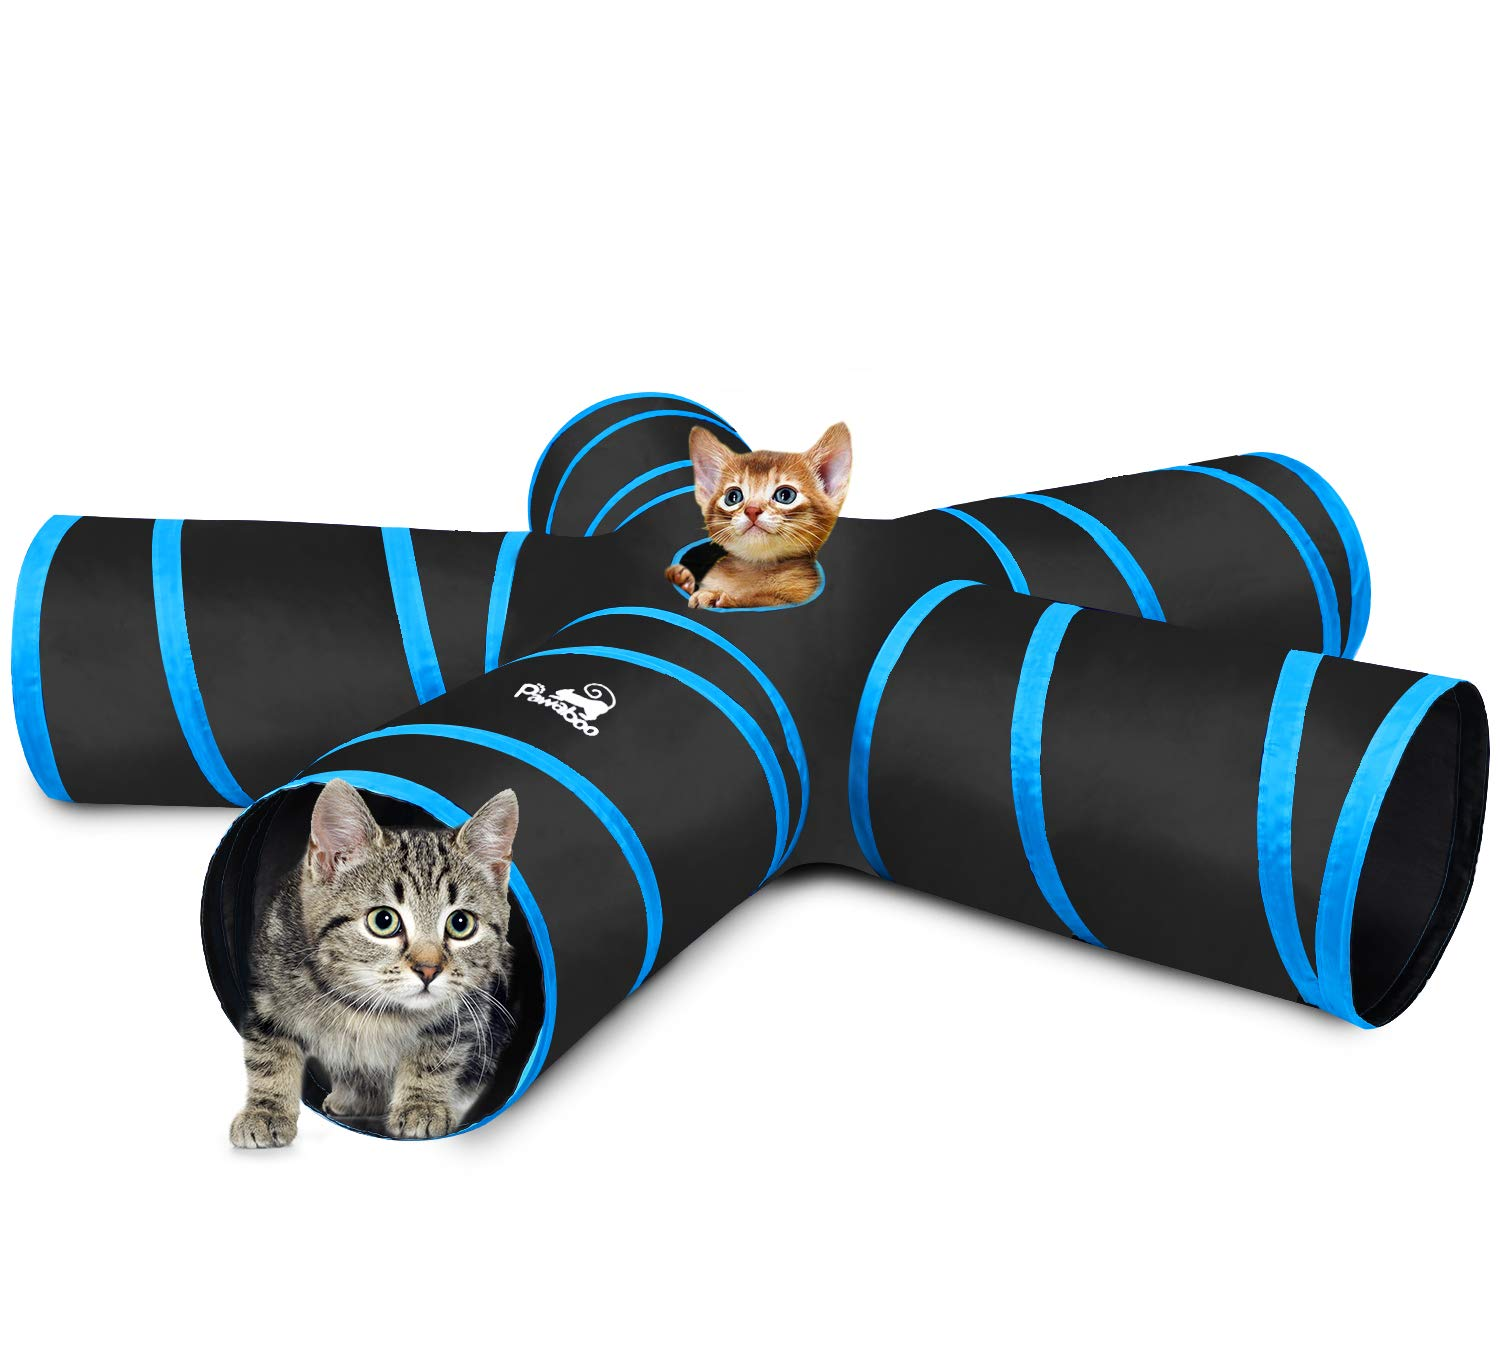 PAWABOO Cat Tunnel, Premium 5 Way Tunnels Extensible Collapsible Cat Play Tunnel Toy Maze Interactive Tube Toy Cat House with Pompon and Bells for Cat Puppy Kitten Rabbit, Black & Light Blue by PAWABOO